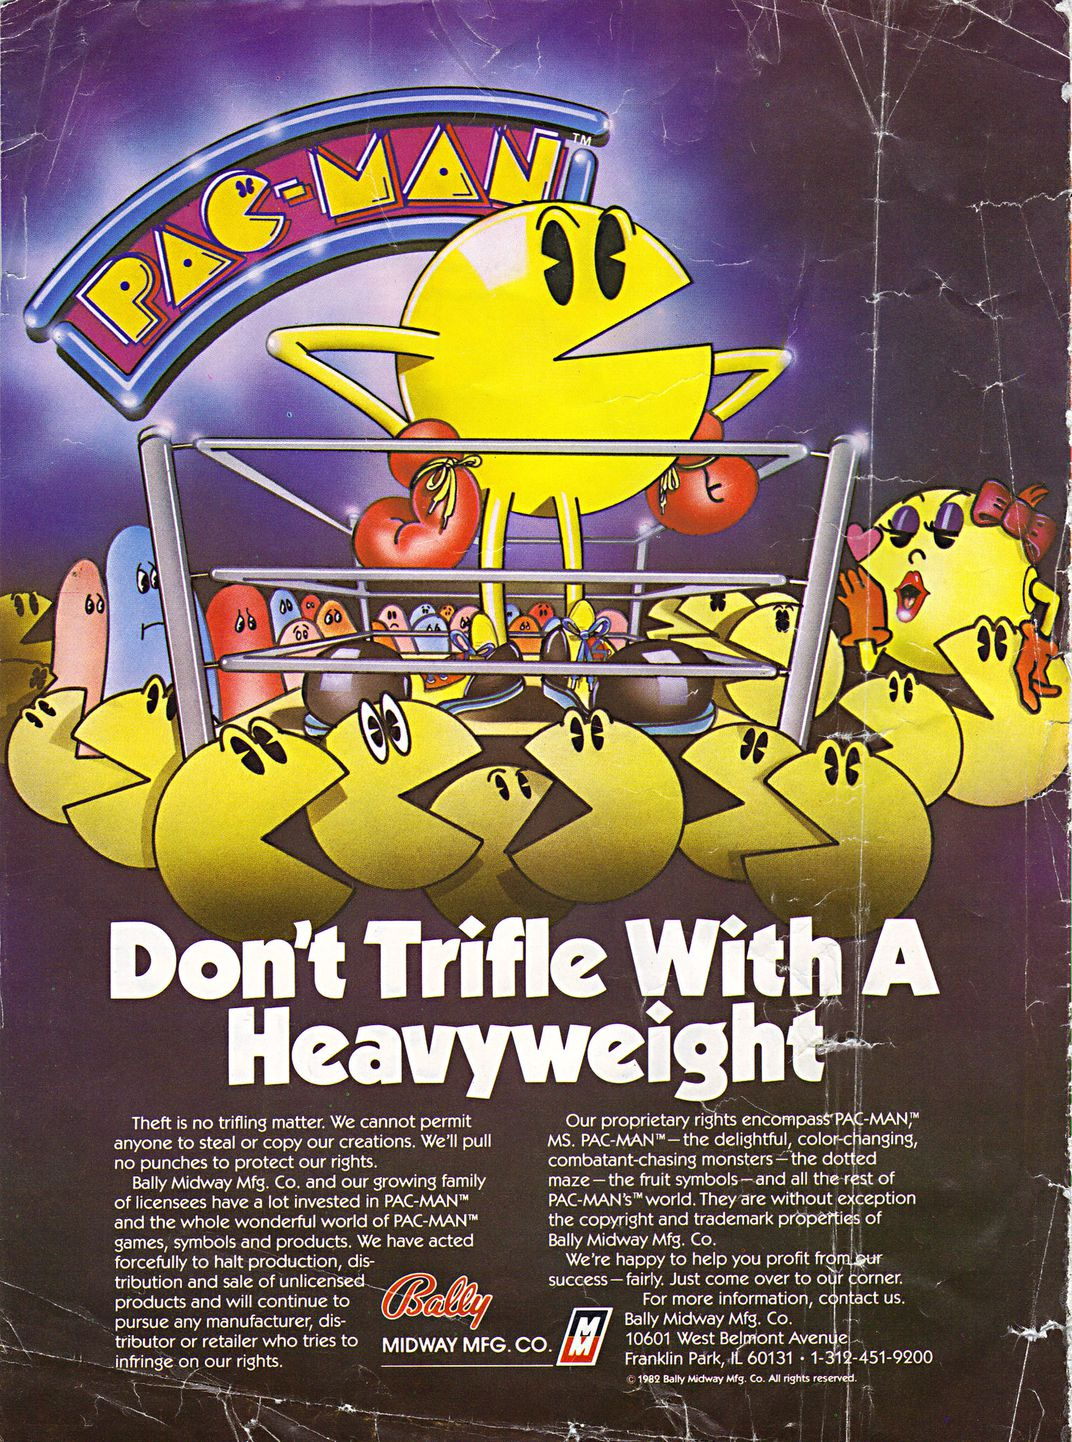 Bally Midway Pac-Man ad.jpg